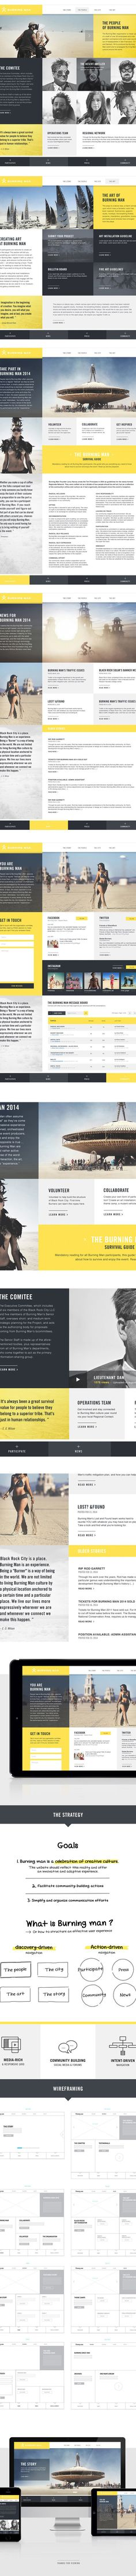 Burning Man - Redesign by Marc-Antoine Roy, via Behance